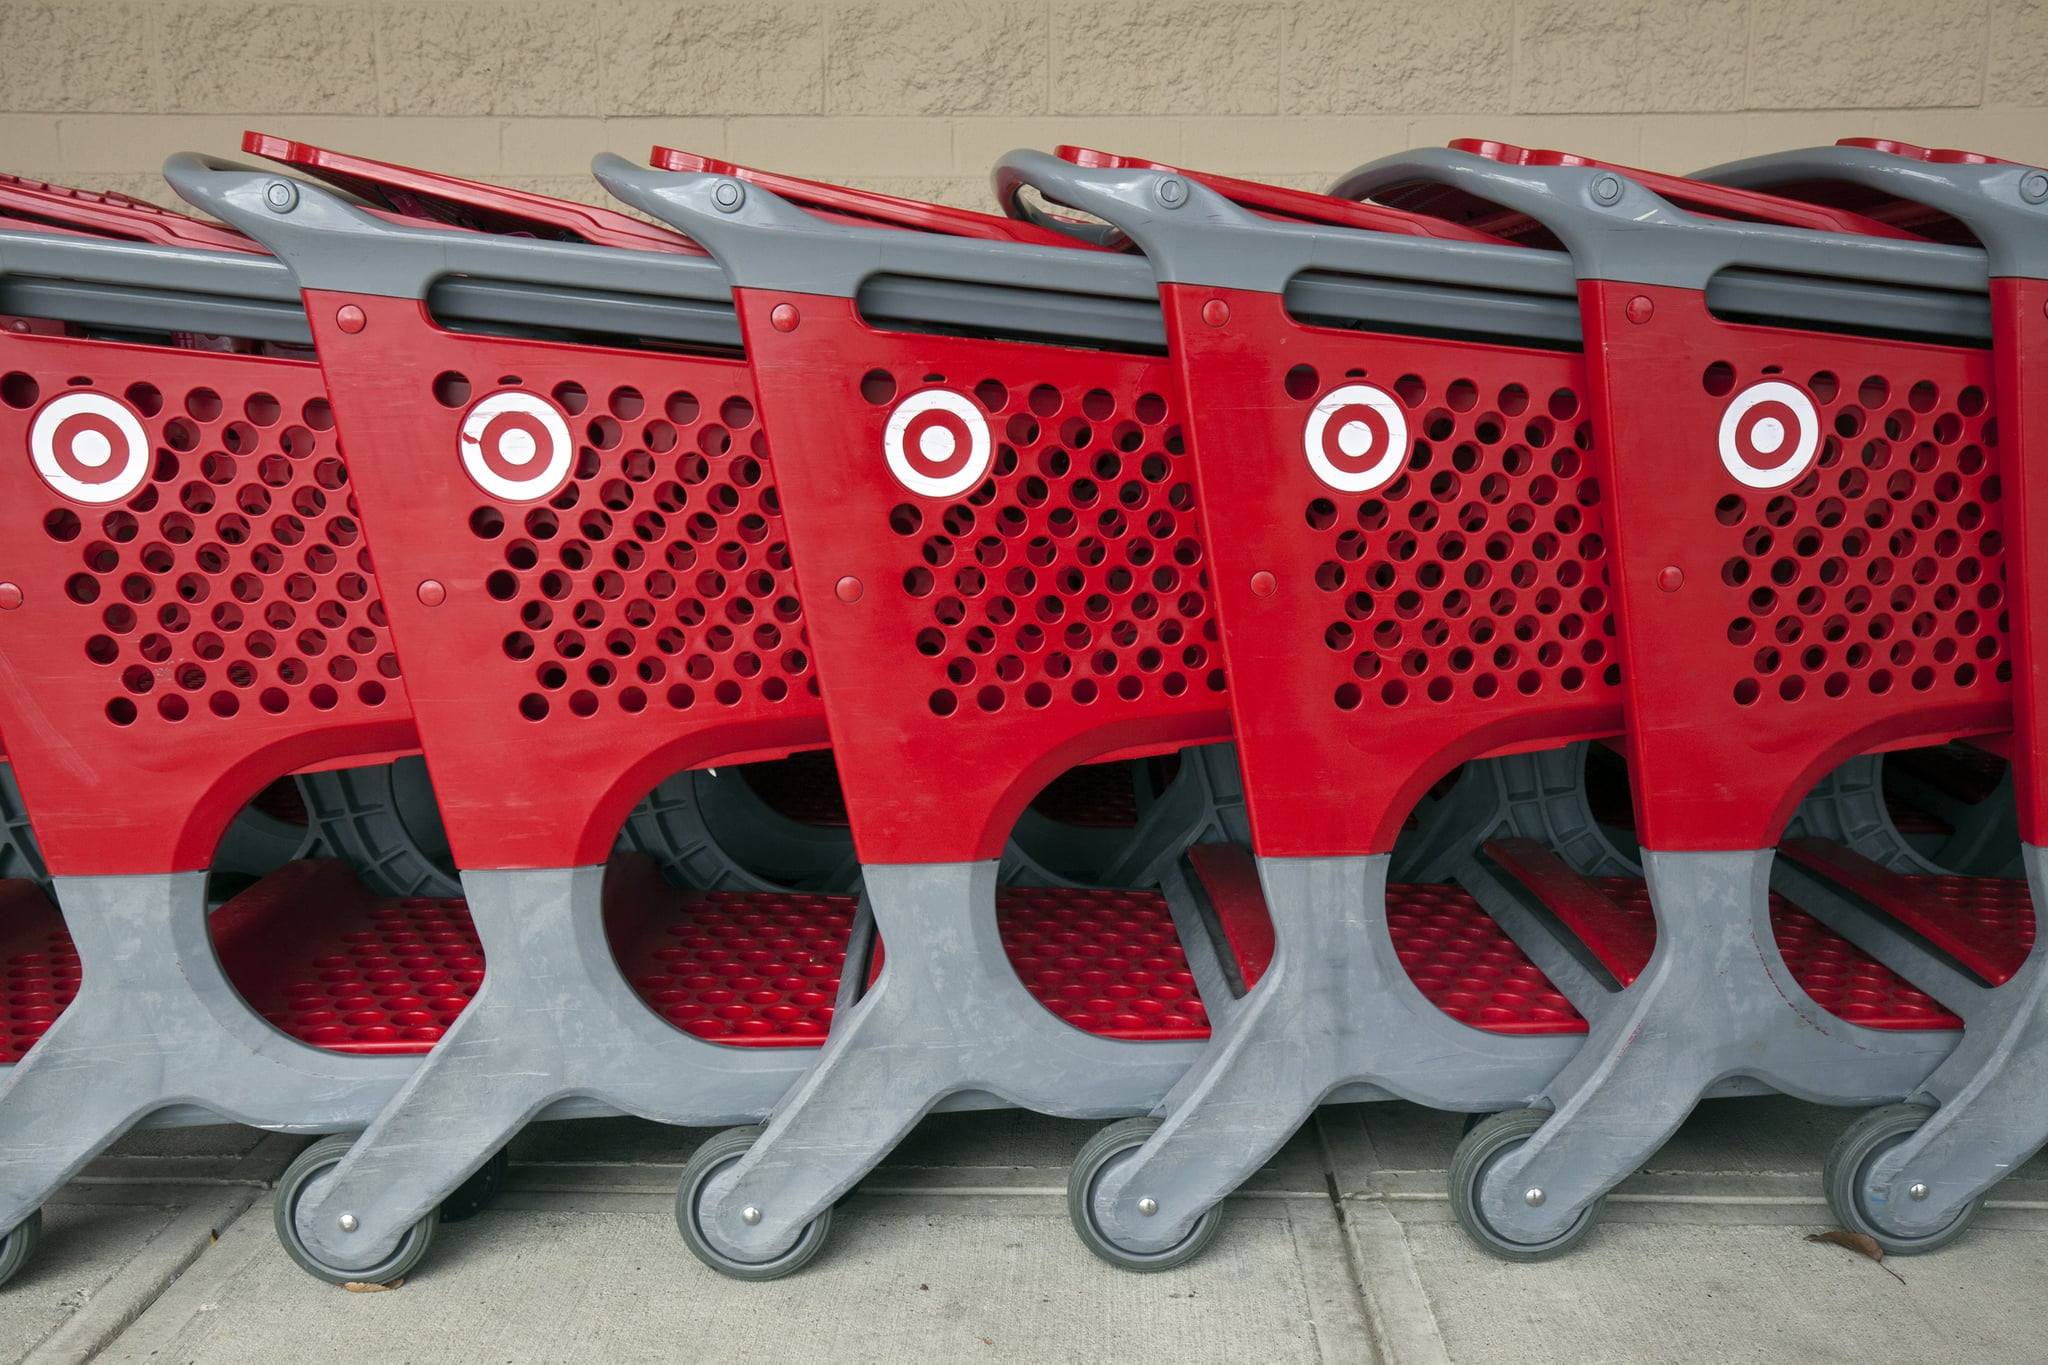 View of branded shopping carts lined up on a sidewalk outside a Target store, Danvers, Massachusetts, November 2018. (Photo by Leif Skoogfors/Getty Images)